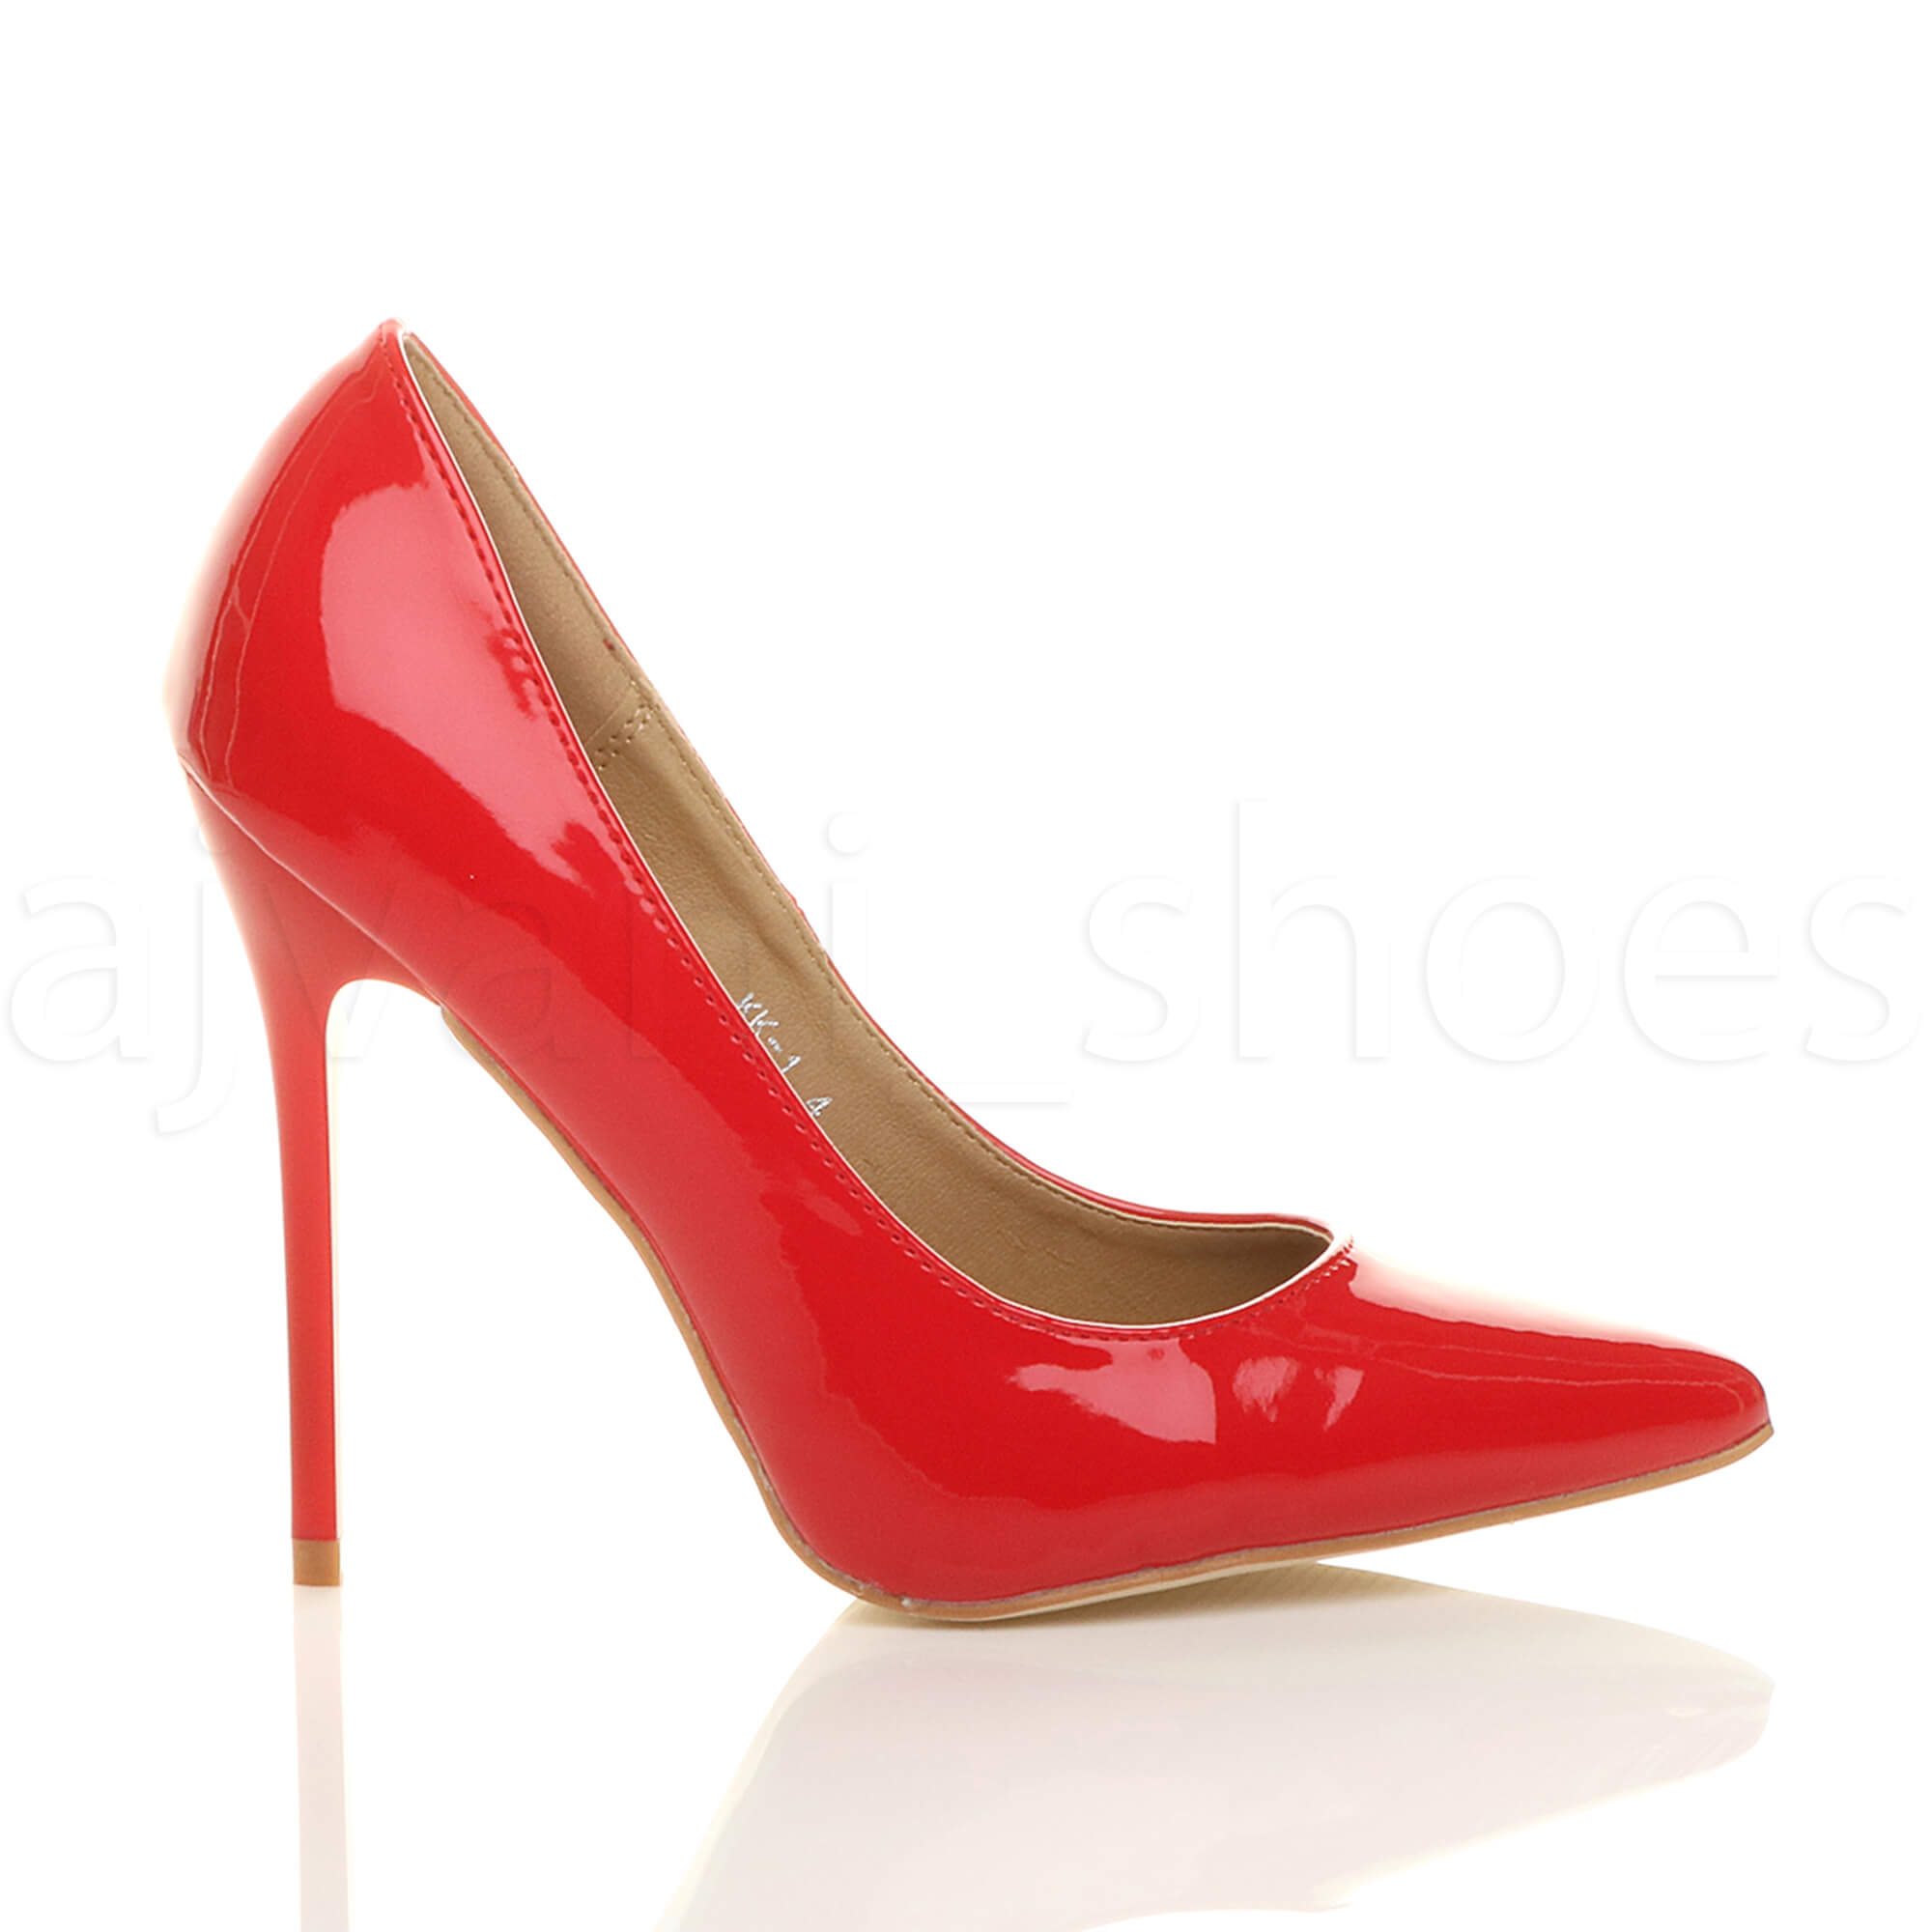 WOMENS-LADIES-HIGH-HEEL-POINTED-CONTRAST-COURT-SMART-PARTY-WORK-SHOES-PUMPS-SIZE thumbnail 161